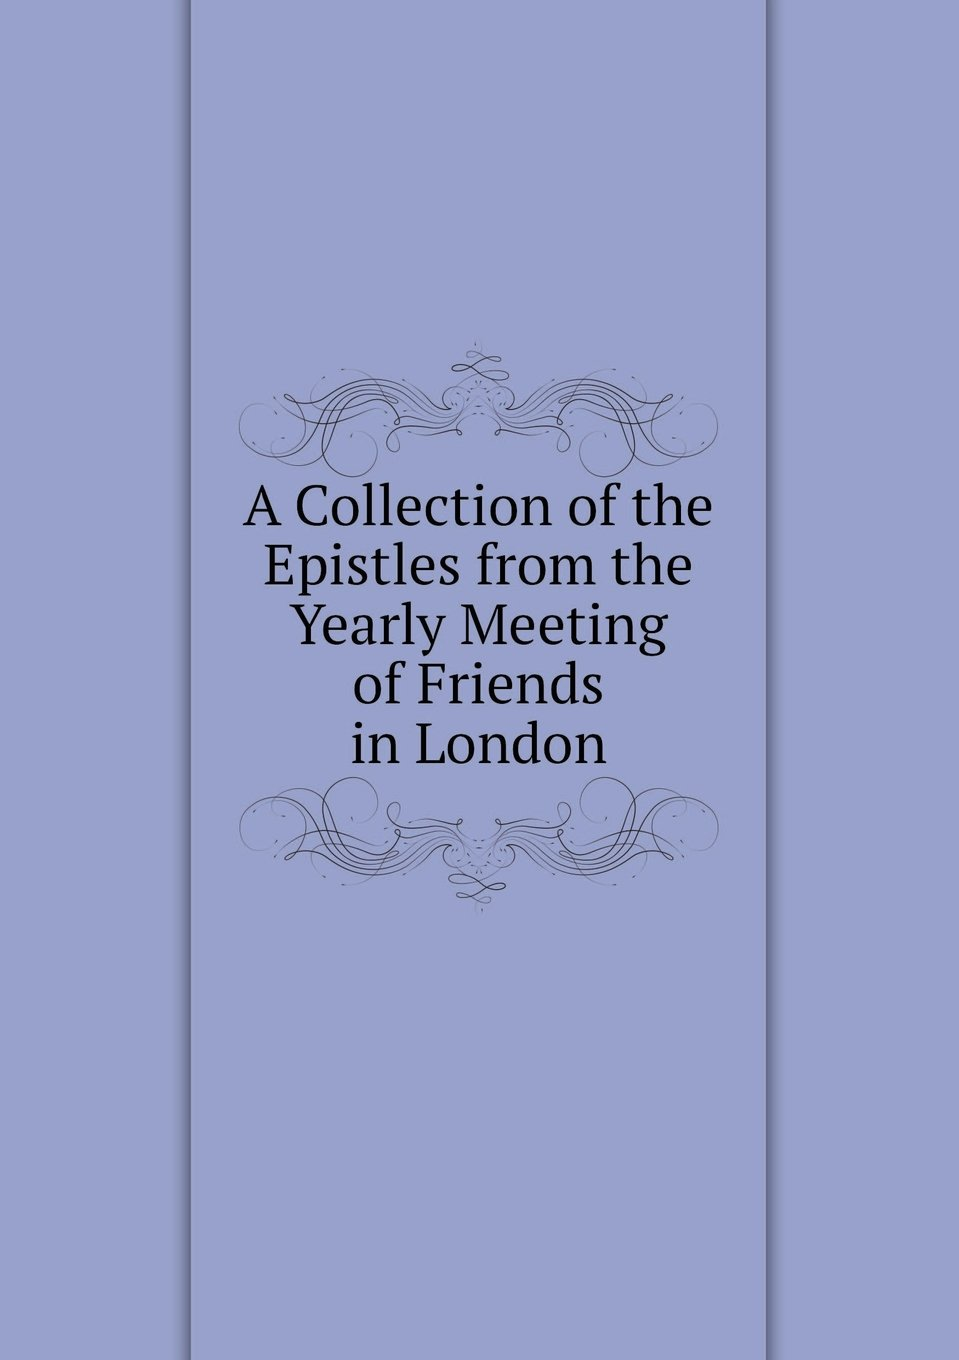 Download A Collection of the Epistles from the Yearly Meeting of Friends in London ebook